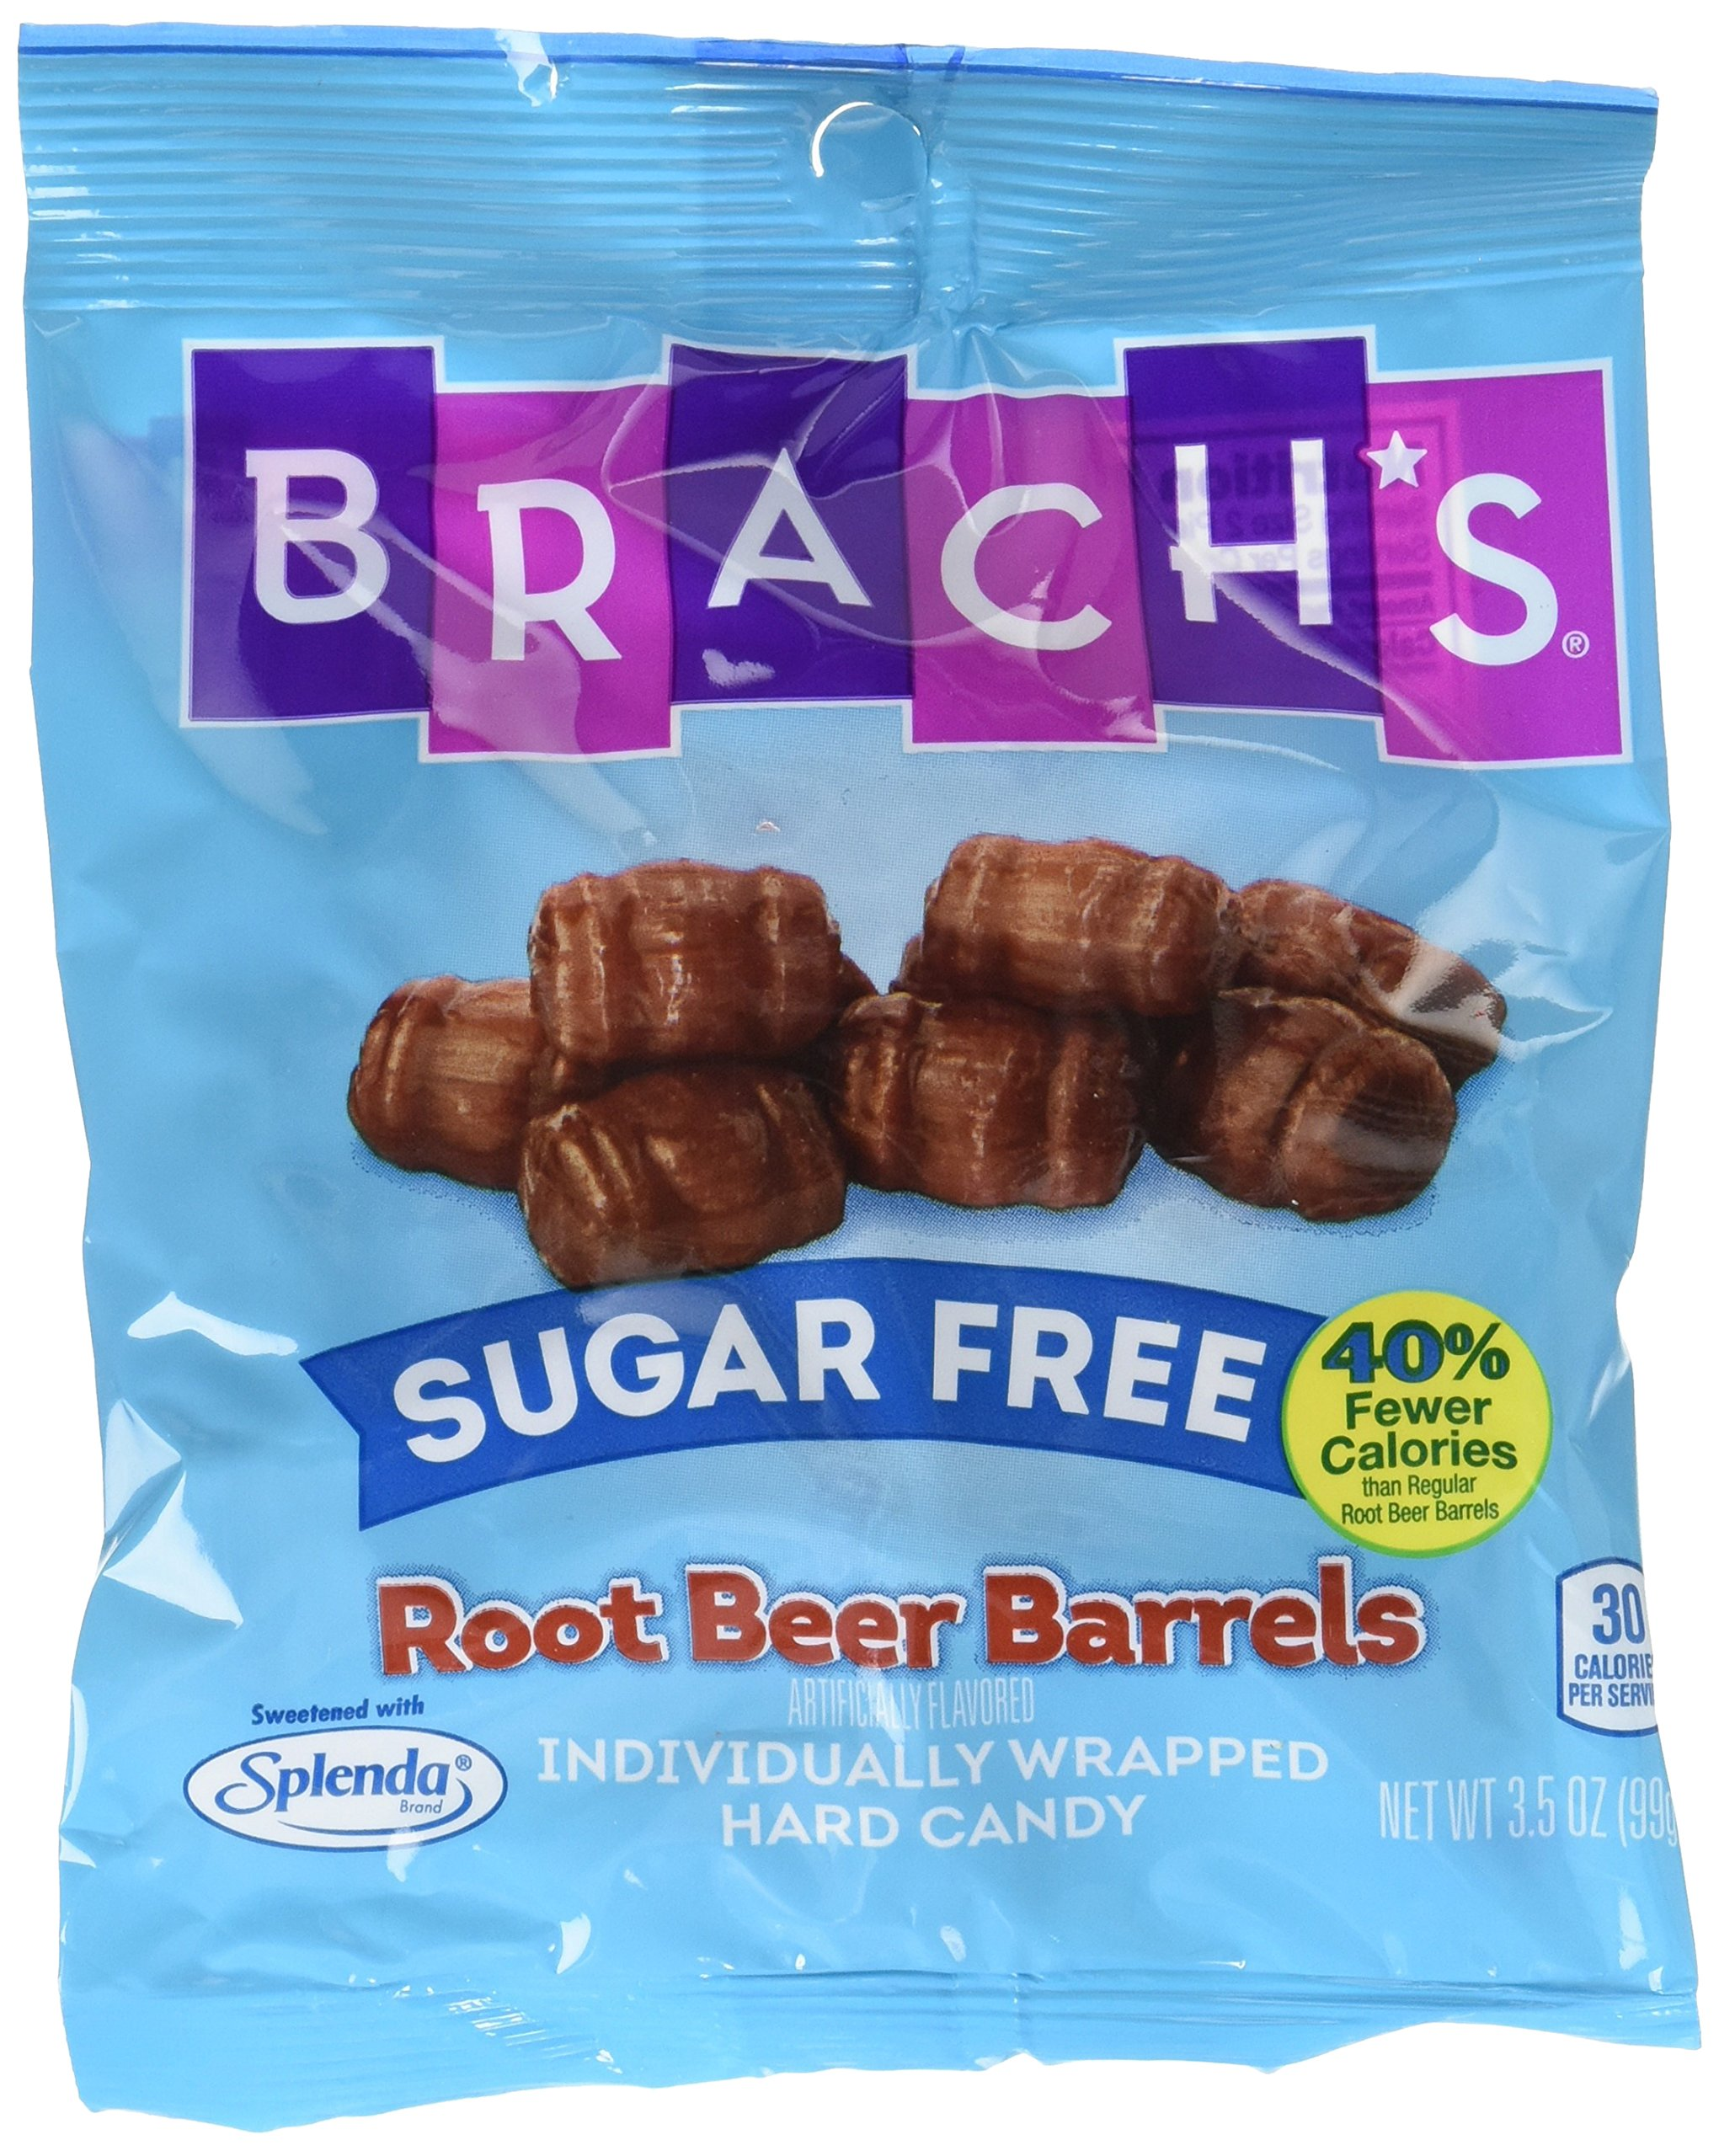 Brach's Root Beer Barrels Individually Wrapped Hard Candy, 3.5oz (Pack of 12) by Brach's